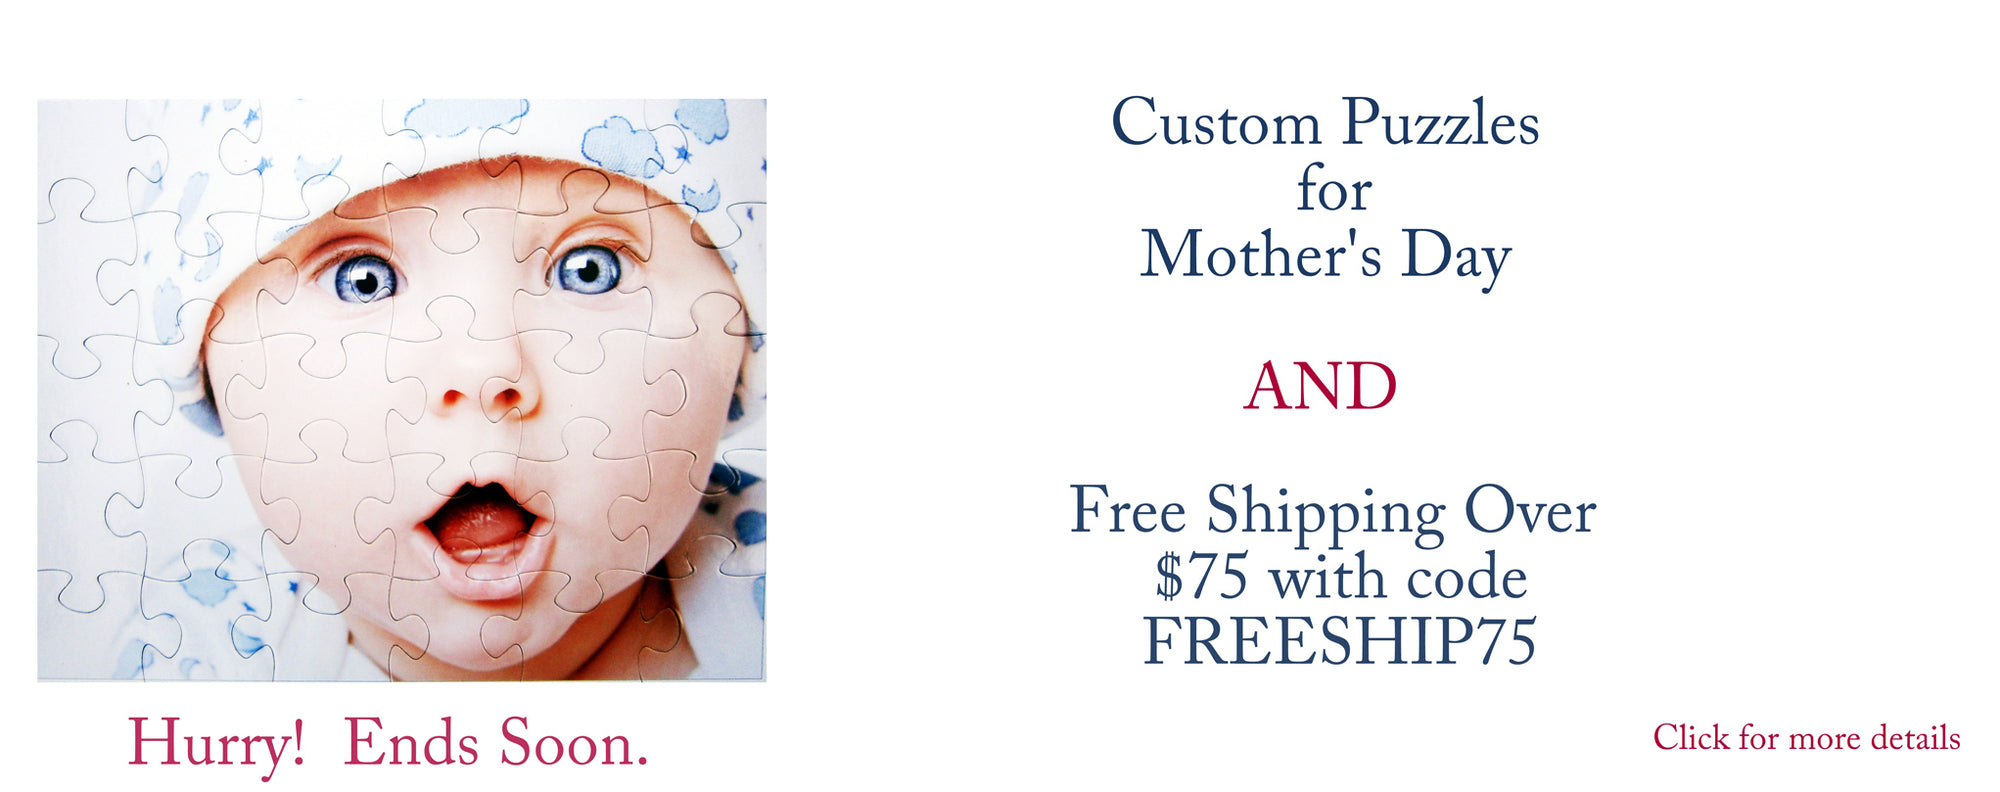 Custom Puzzle Gift For Mother's Day - The Missing Piece Puzzle Company  Free Shipping over $75 coupon code freeship75